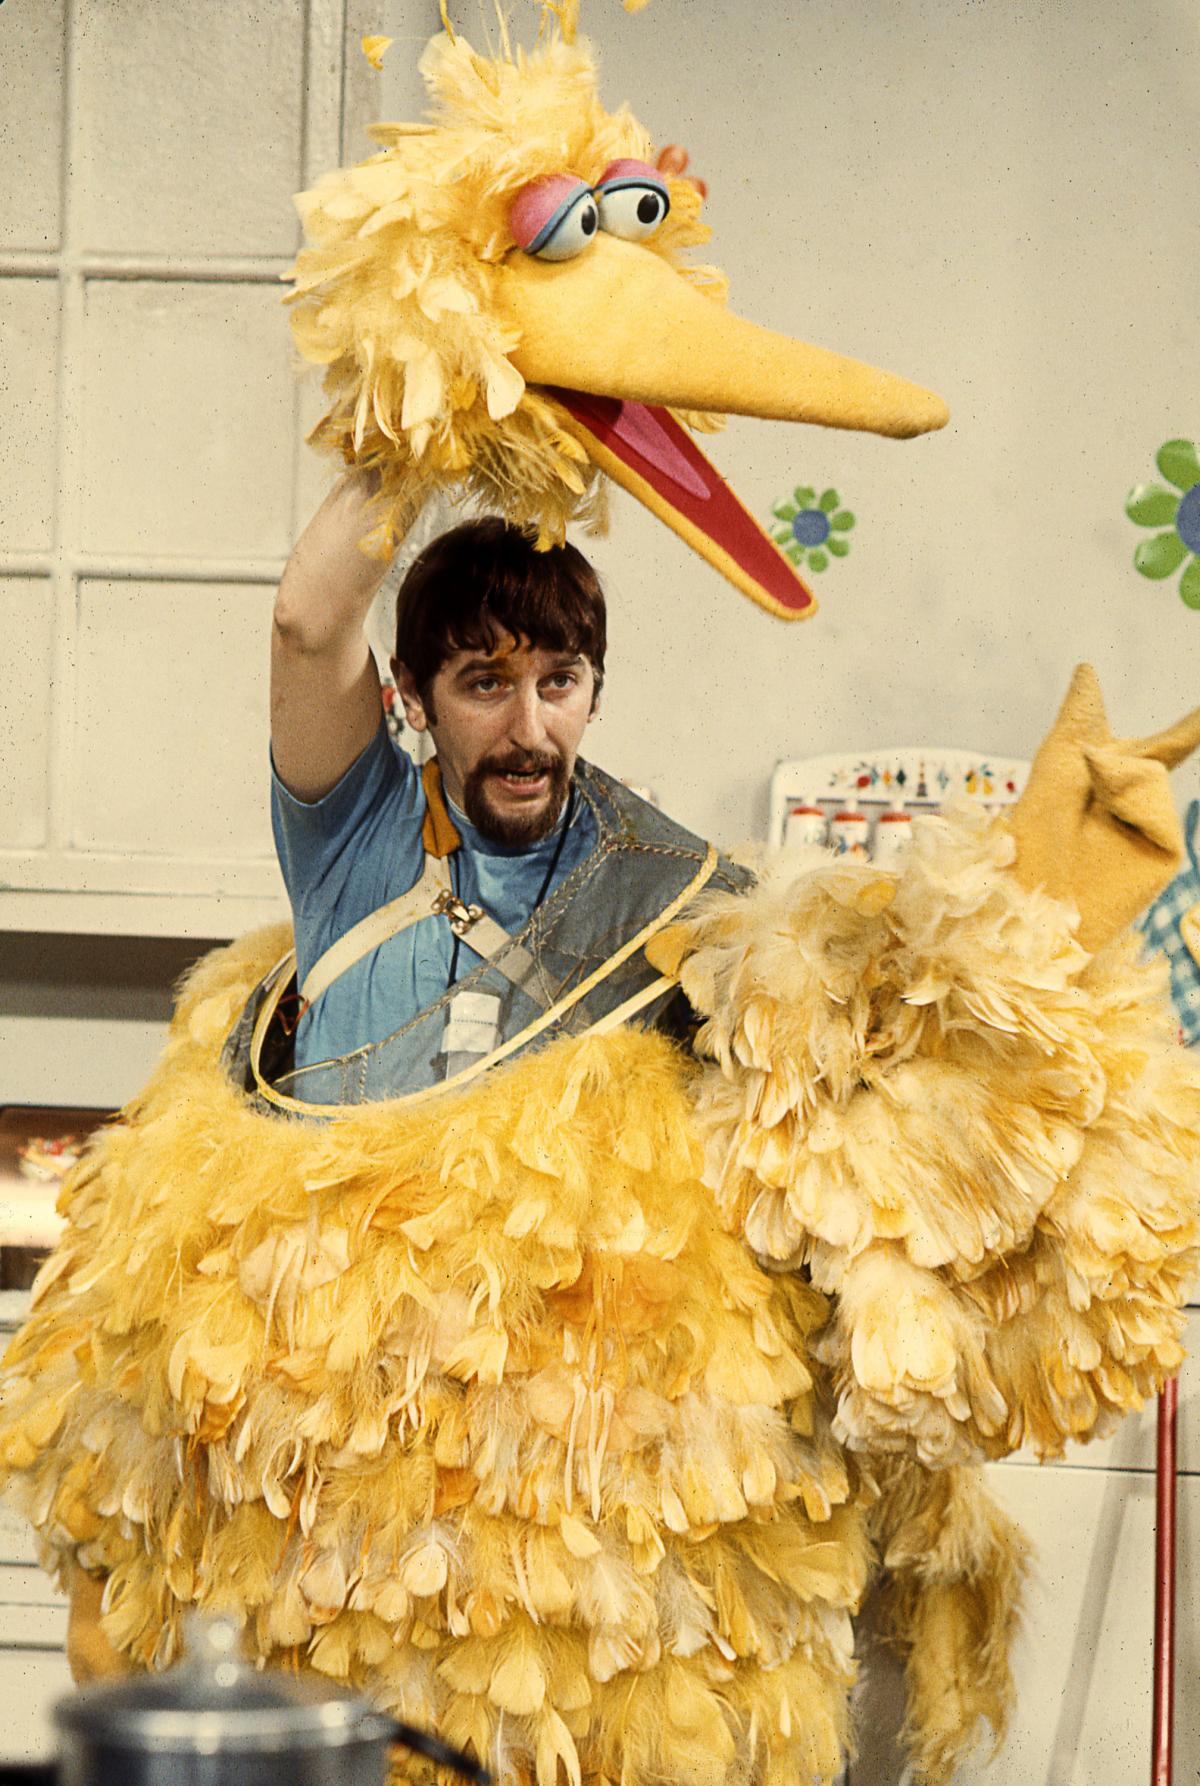 Spinney, who also plays Oscar the Grouch, says the Big Bird voice is actually just his own voice, but a little higher.